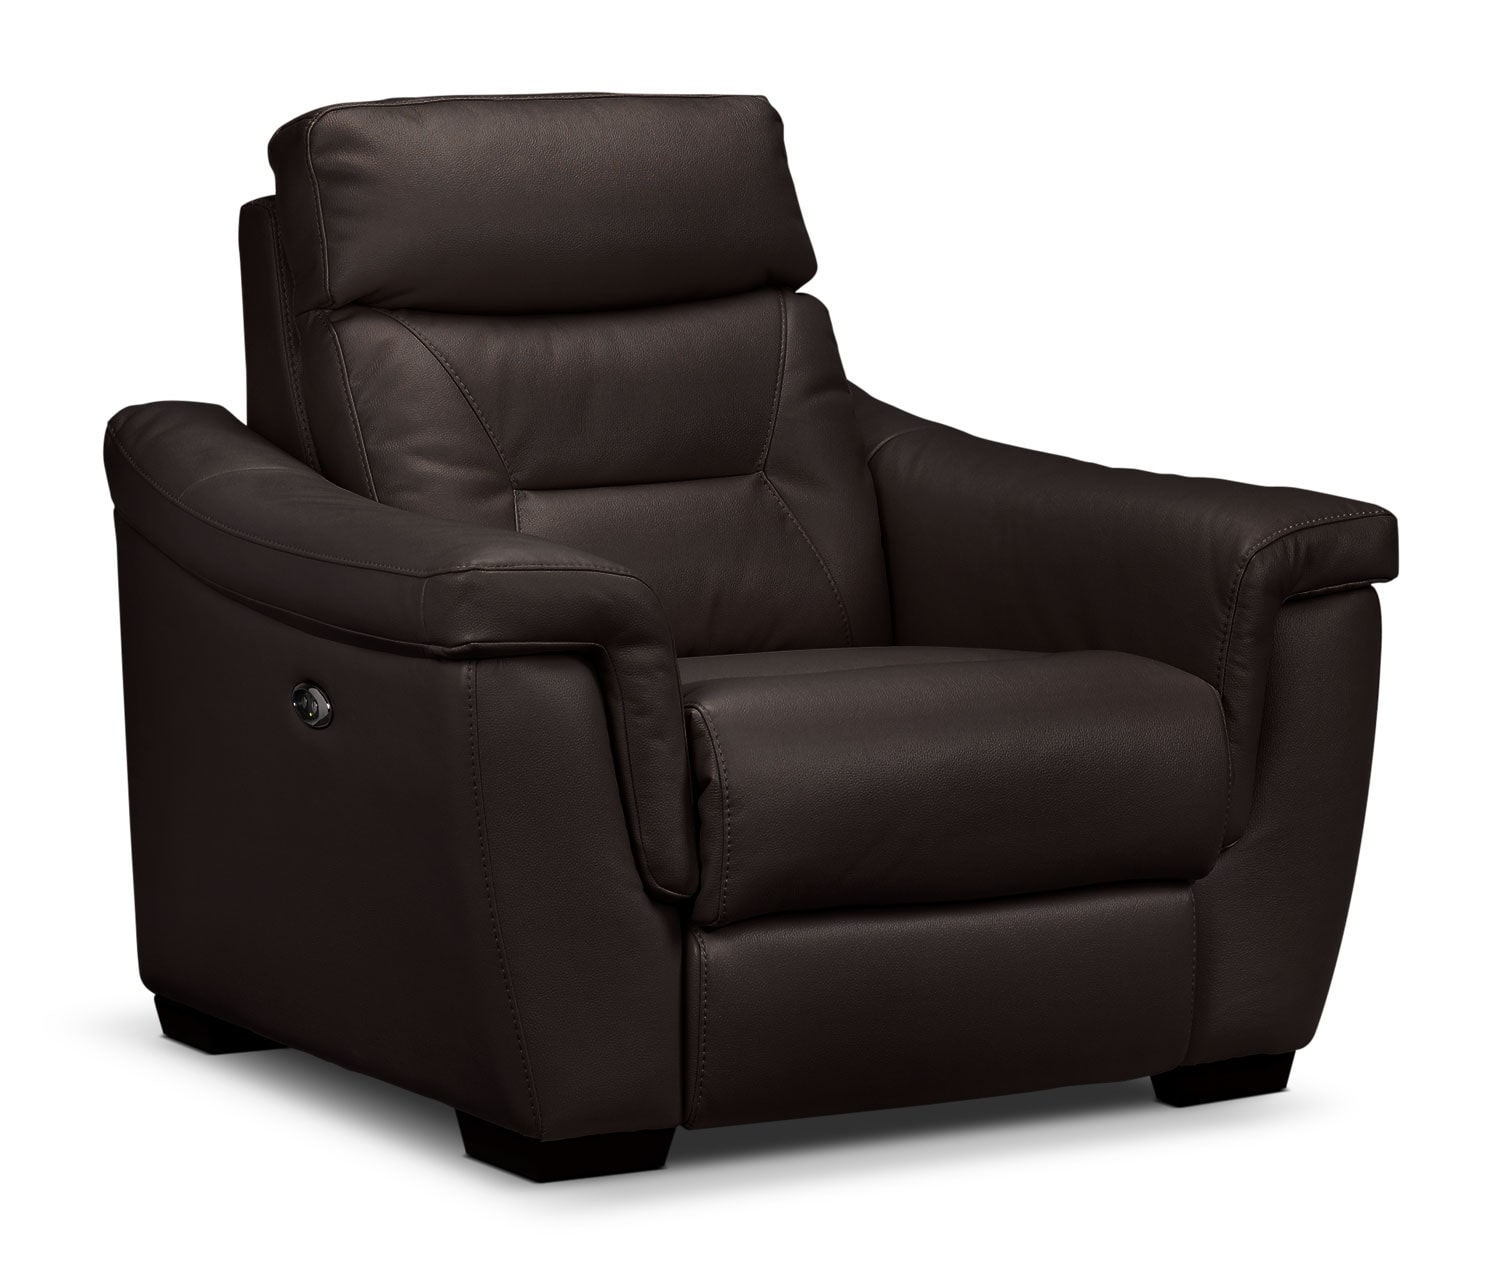 Ralston Power Recliner - Walnut